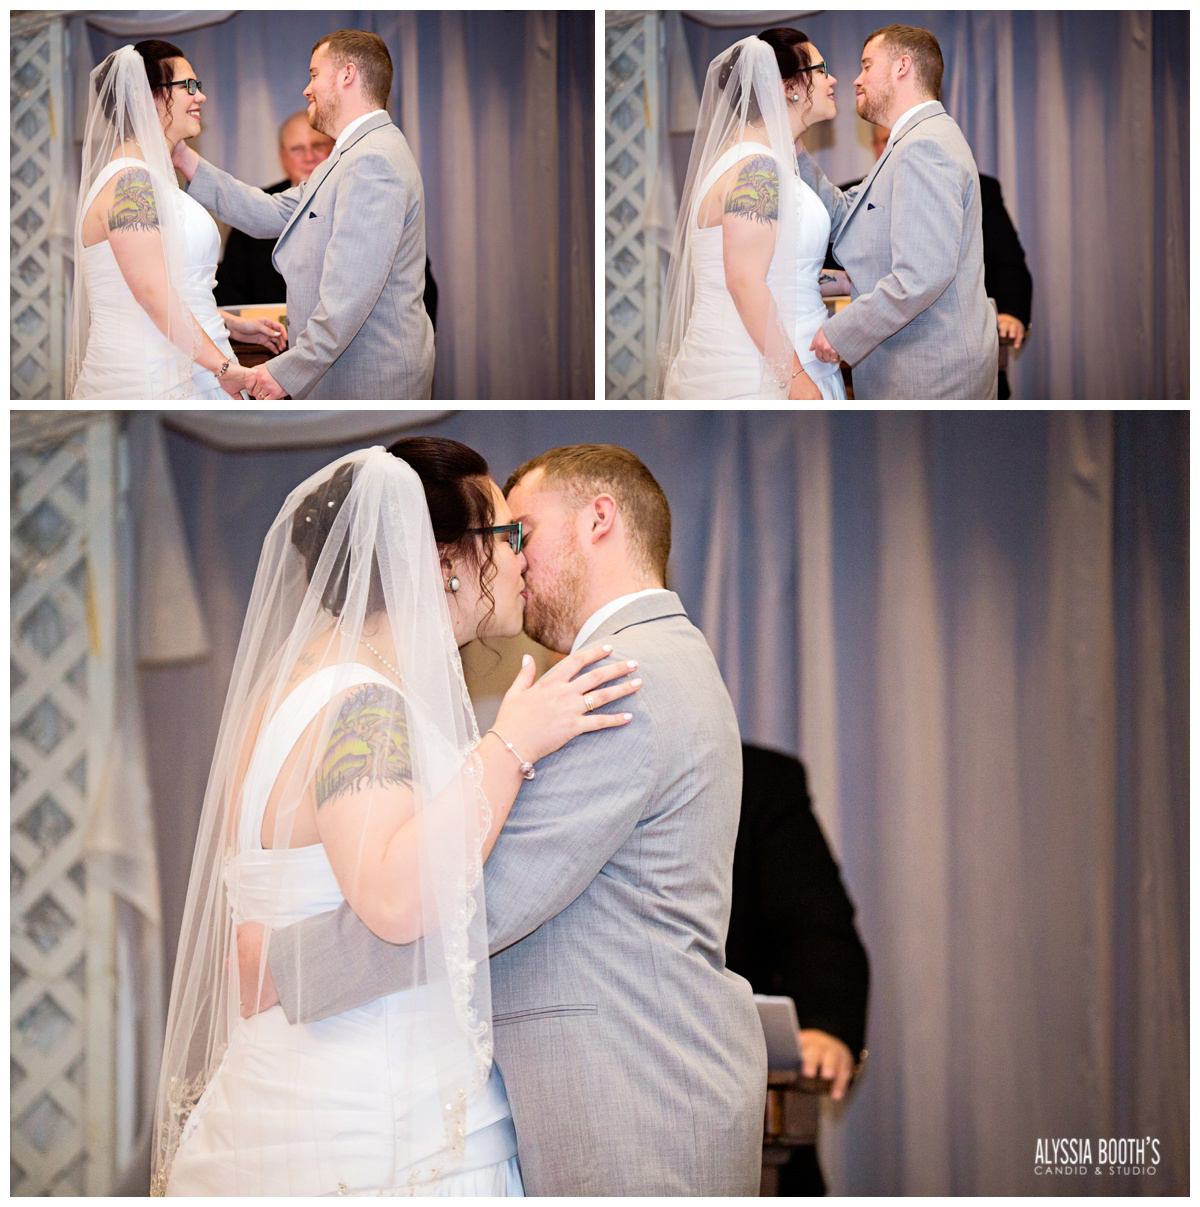 Kiss | Marisa & Garrett 10.23.15 | Wedding at the Lawton Community Center | Kalamazoo Mi | Alyssia Booth's Candid & Studio